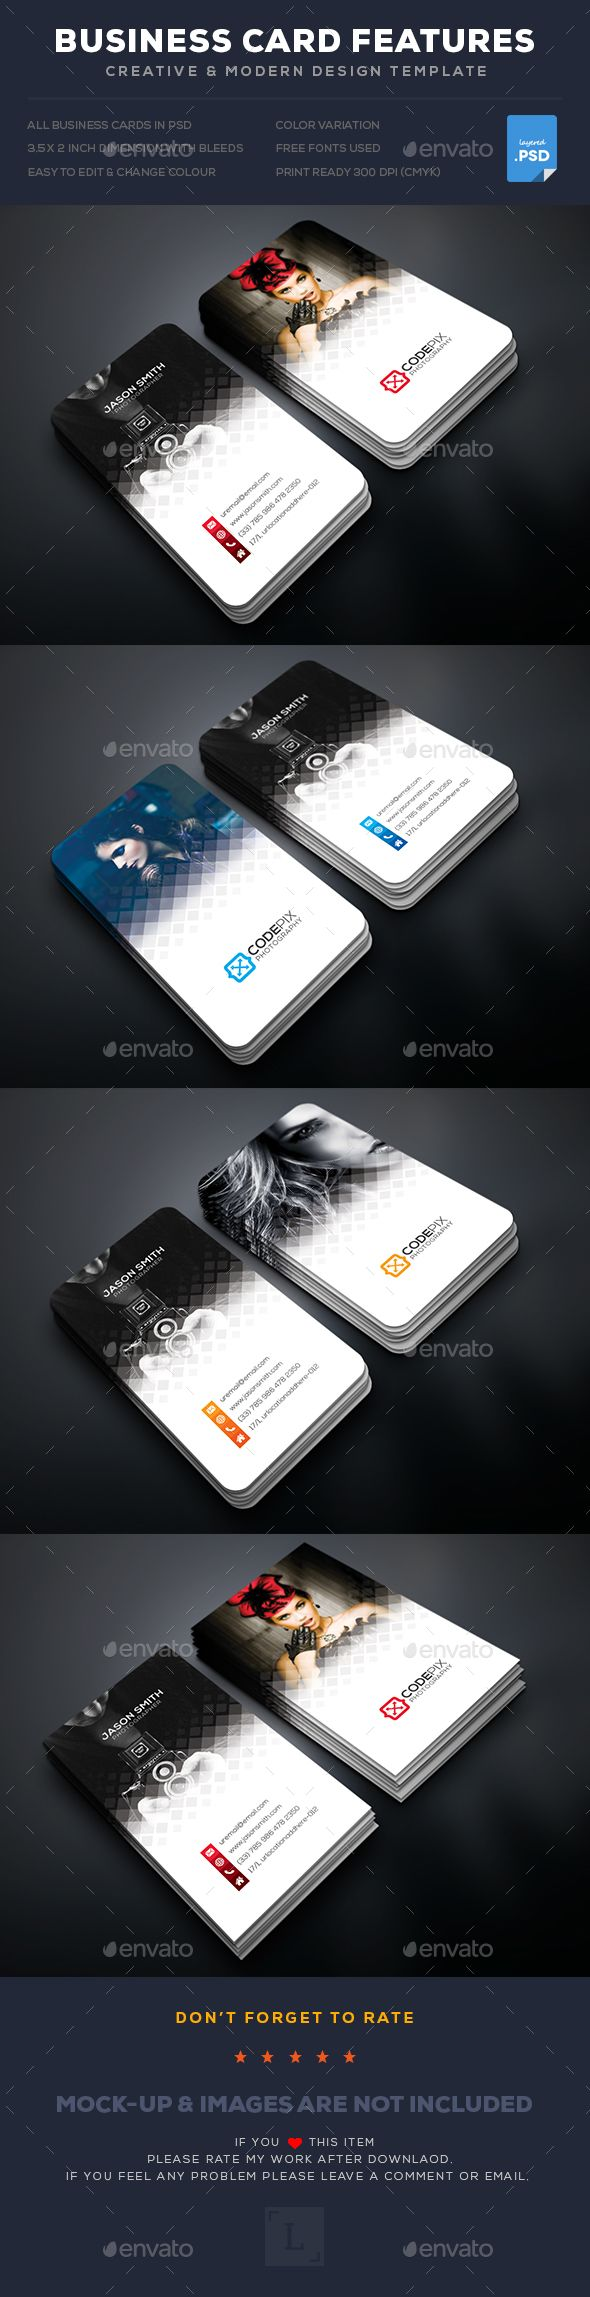 Best 25+ Presentation Cards Ideas On Pinterest | Double Sided Business Cards,  Formatting Codes And Business Card Design